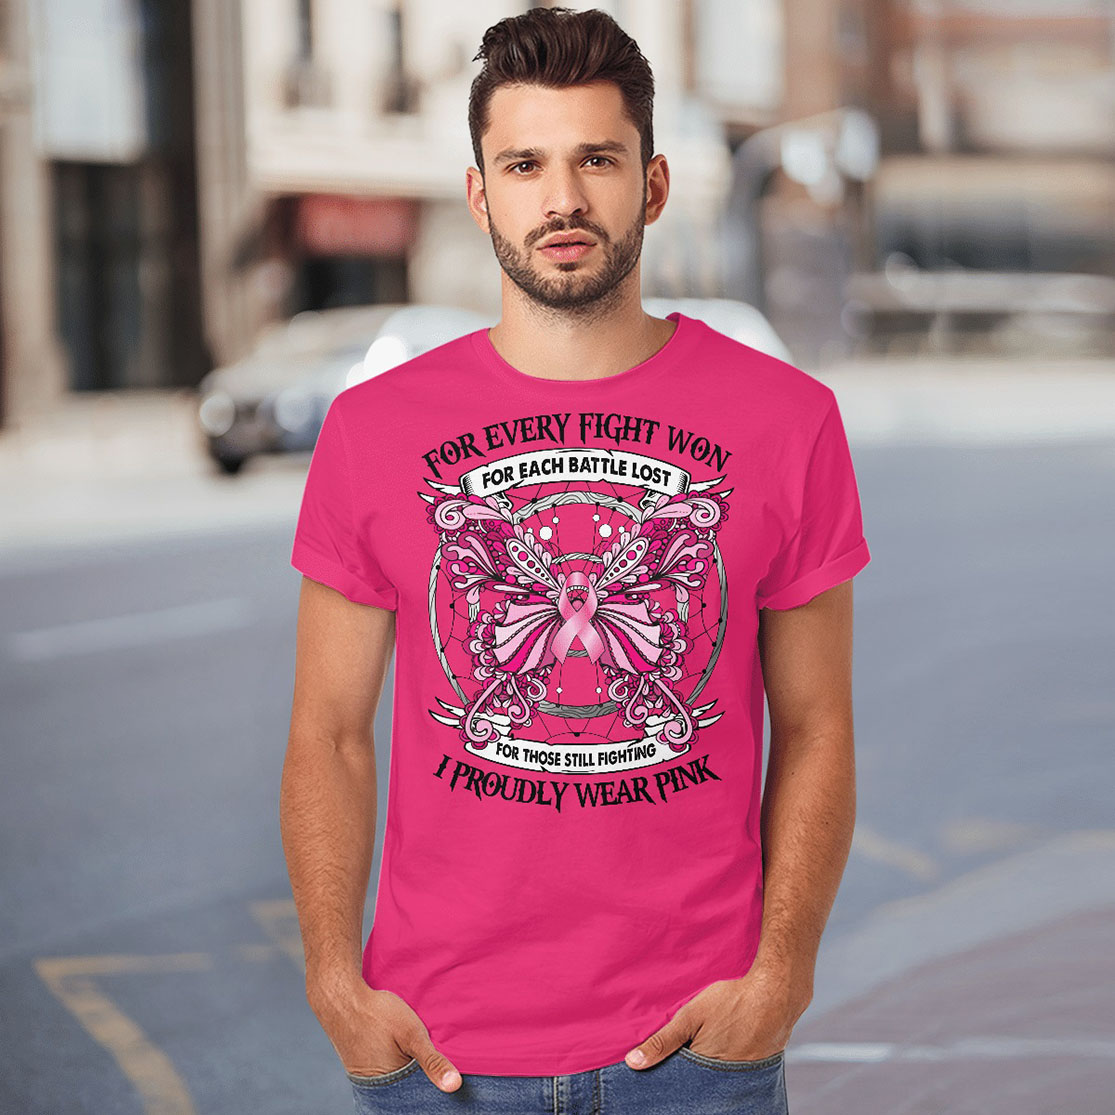 Breast-cancer-awareness-For-every-fight-won-for-each-battle-lost-shirt3-1